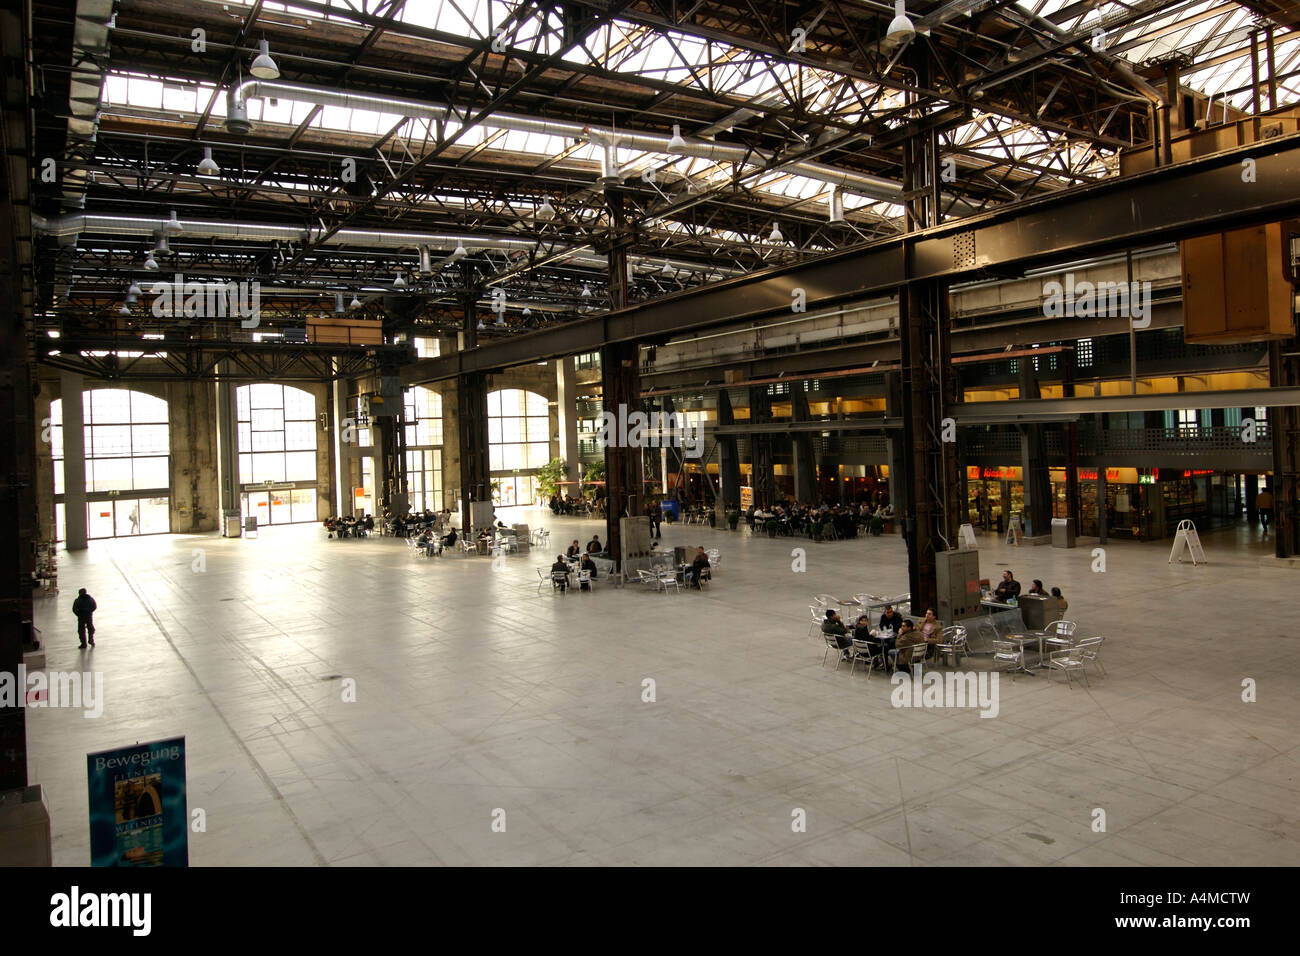 The interior of the Puls 5 centre a former steel foundry in the culturally transformed area of West Zürich. - Stock Image